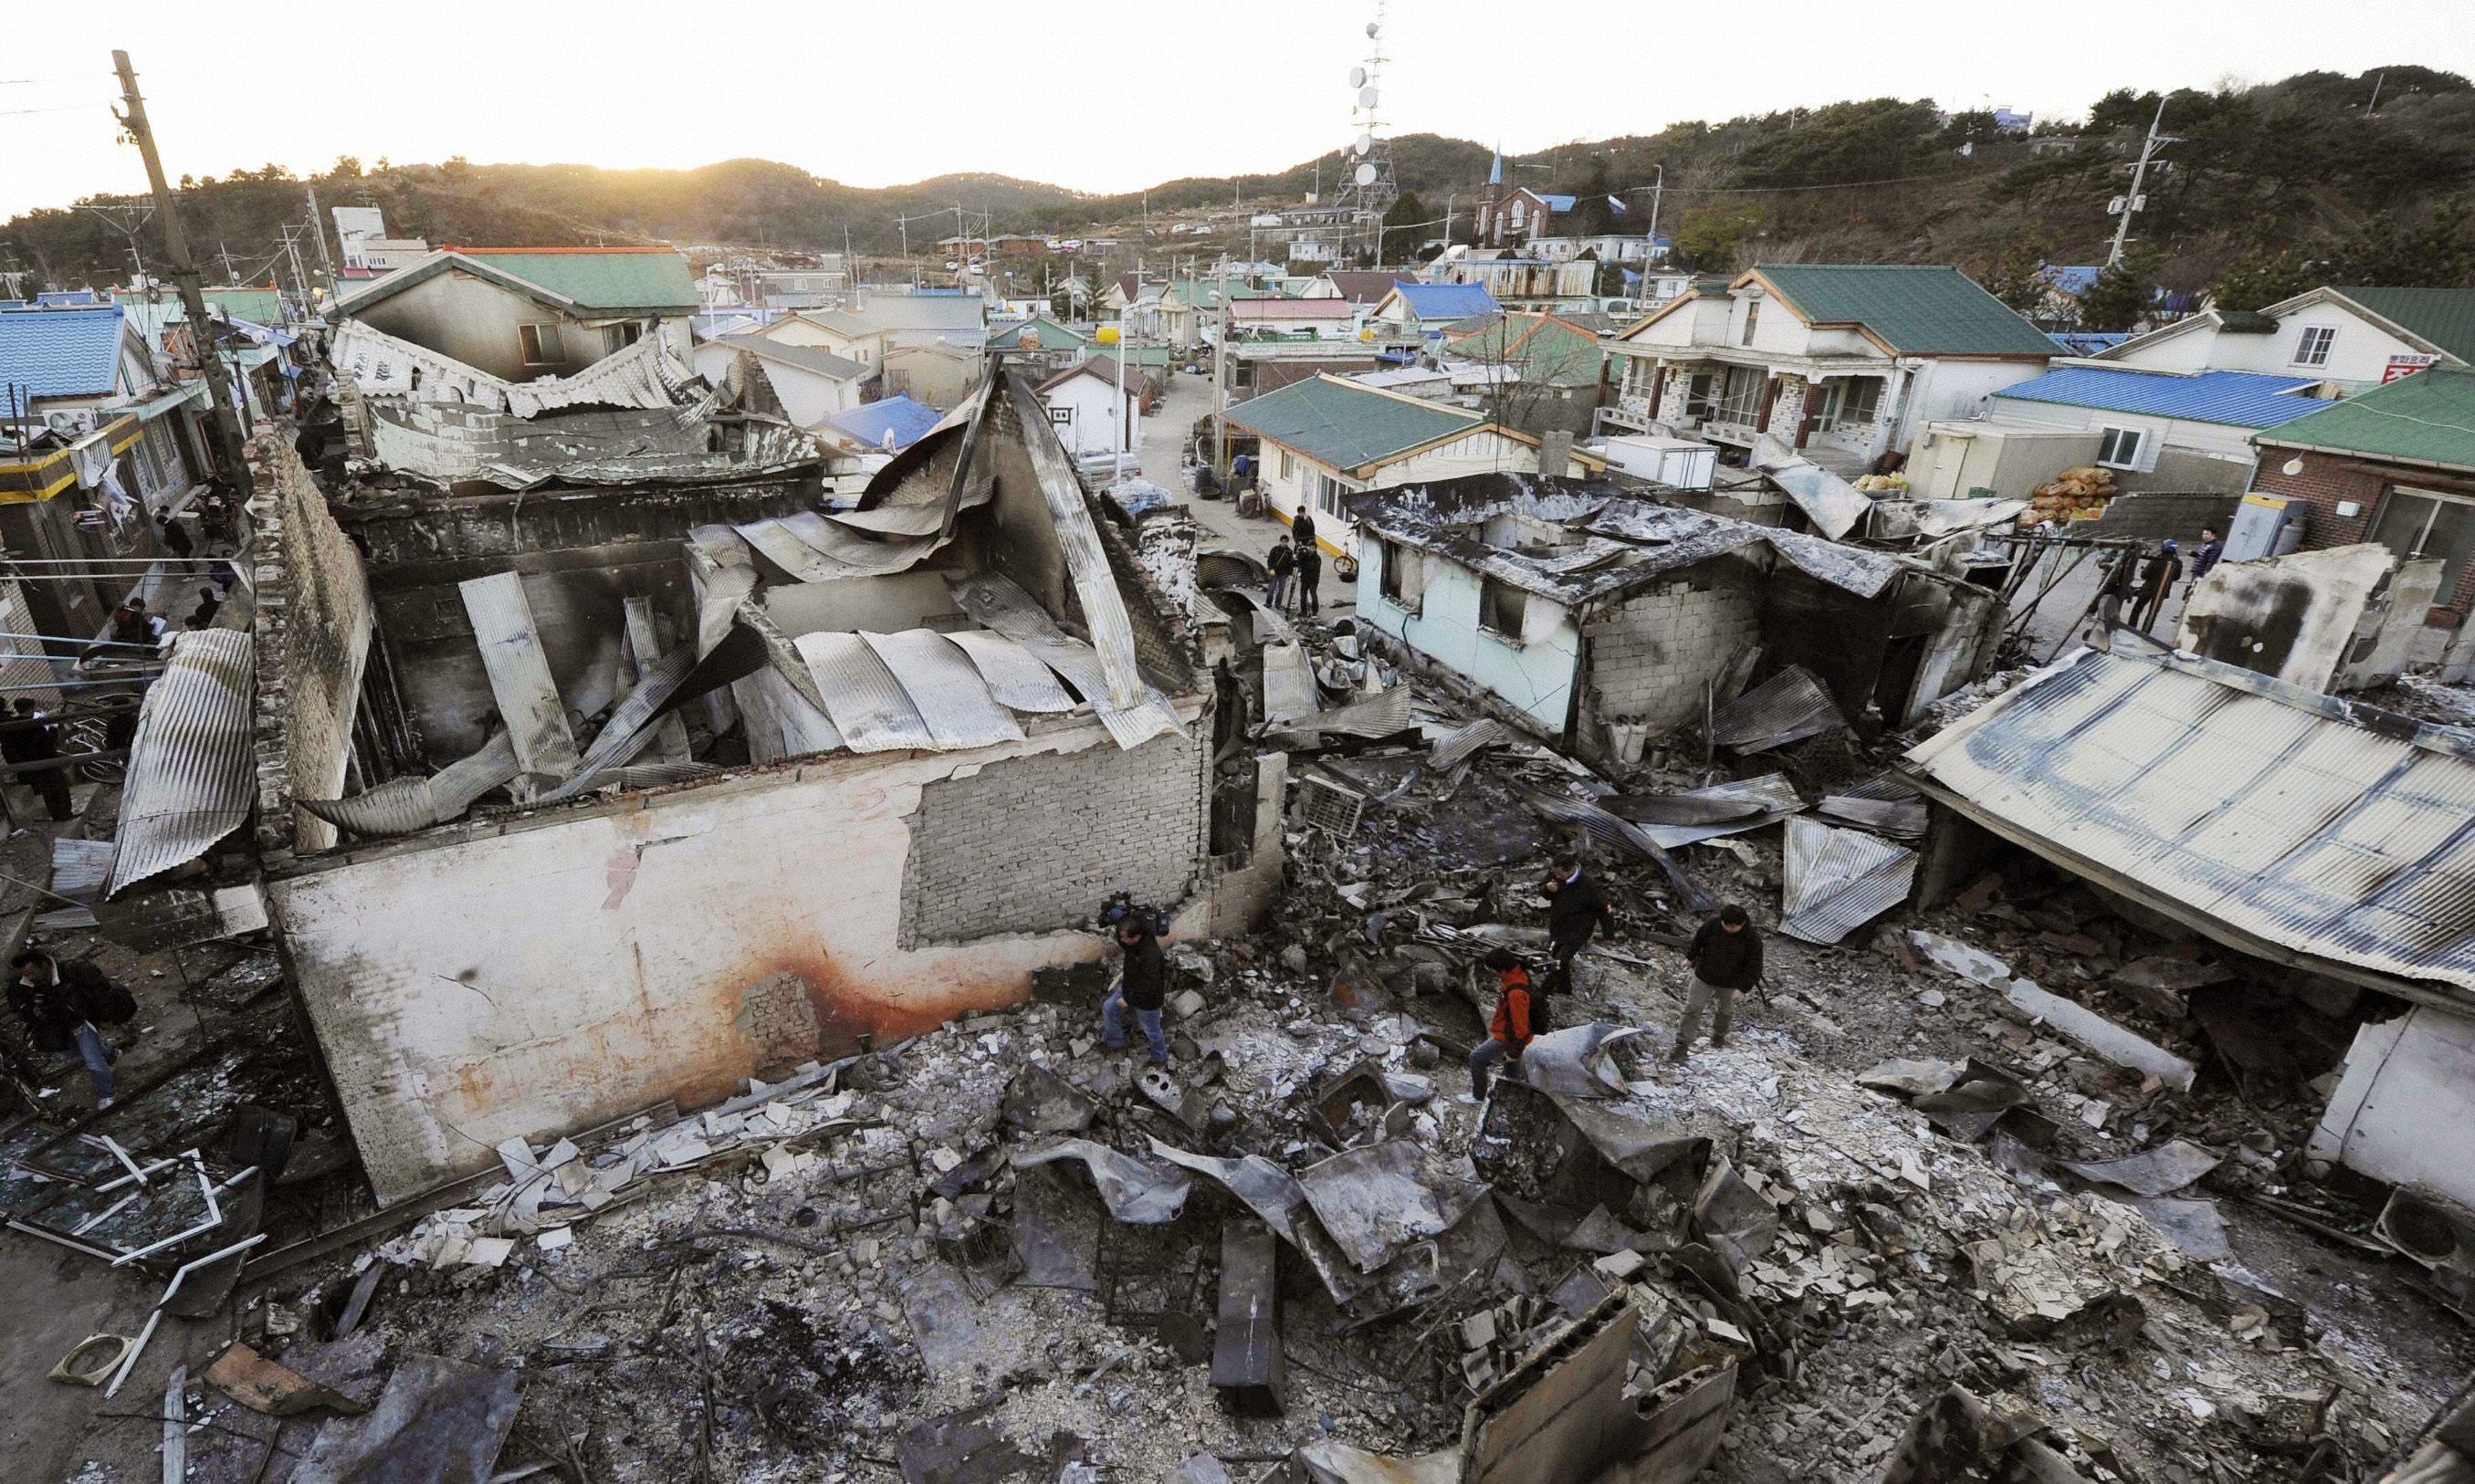 Houses destroyed by North Korean artillery shelling are pictured on Yeonpyeong island November 25, 2010. North Korea fired dozens of artillery shells at a South Korean island on Tuesday, killing two South Korean soldiers and two civilians and setting houses ablaze in the heaviest attack on its neighbor since the Korean War ended in 1953.